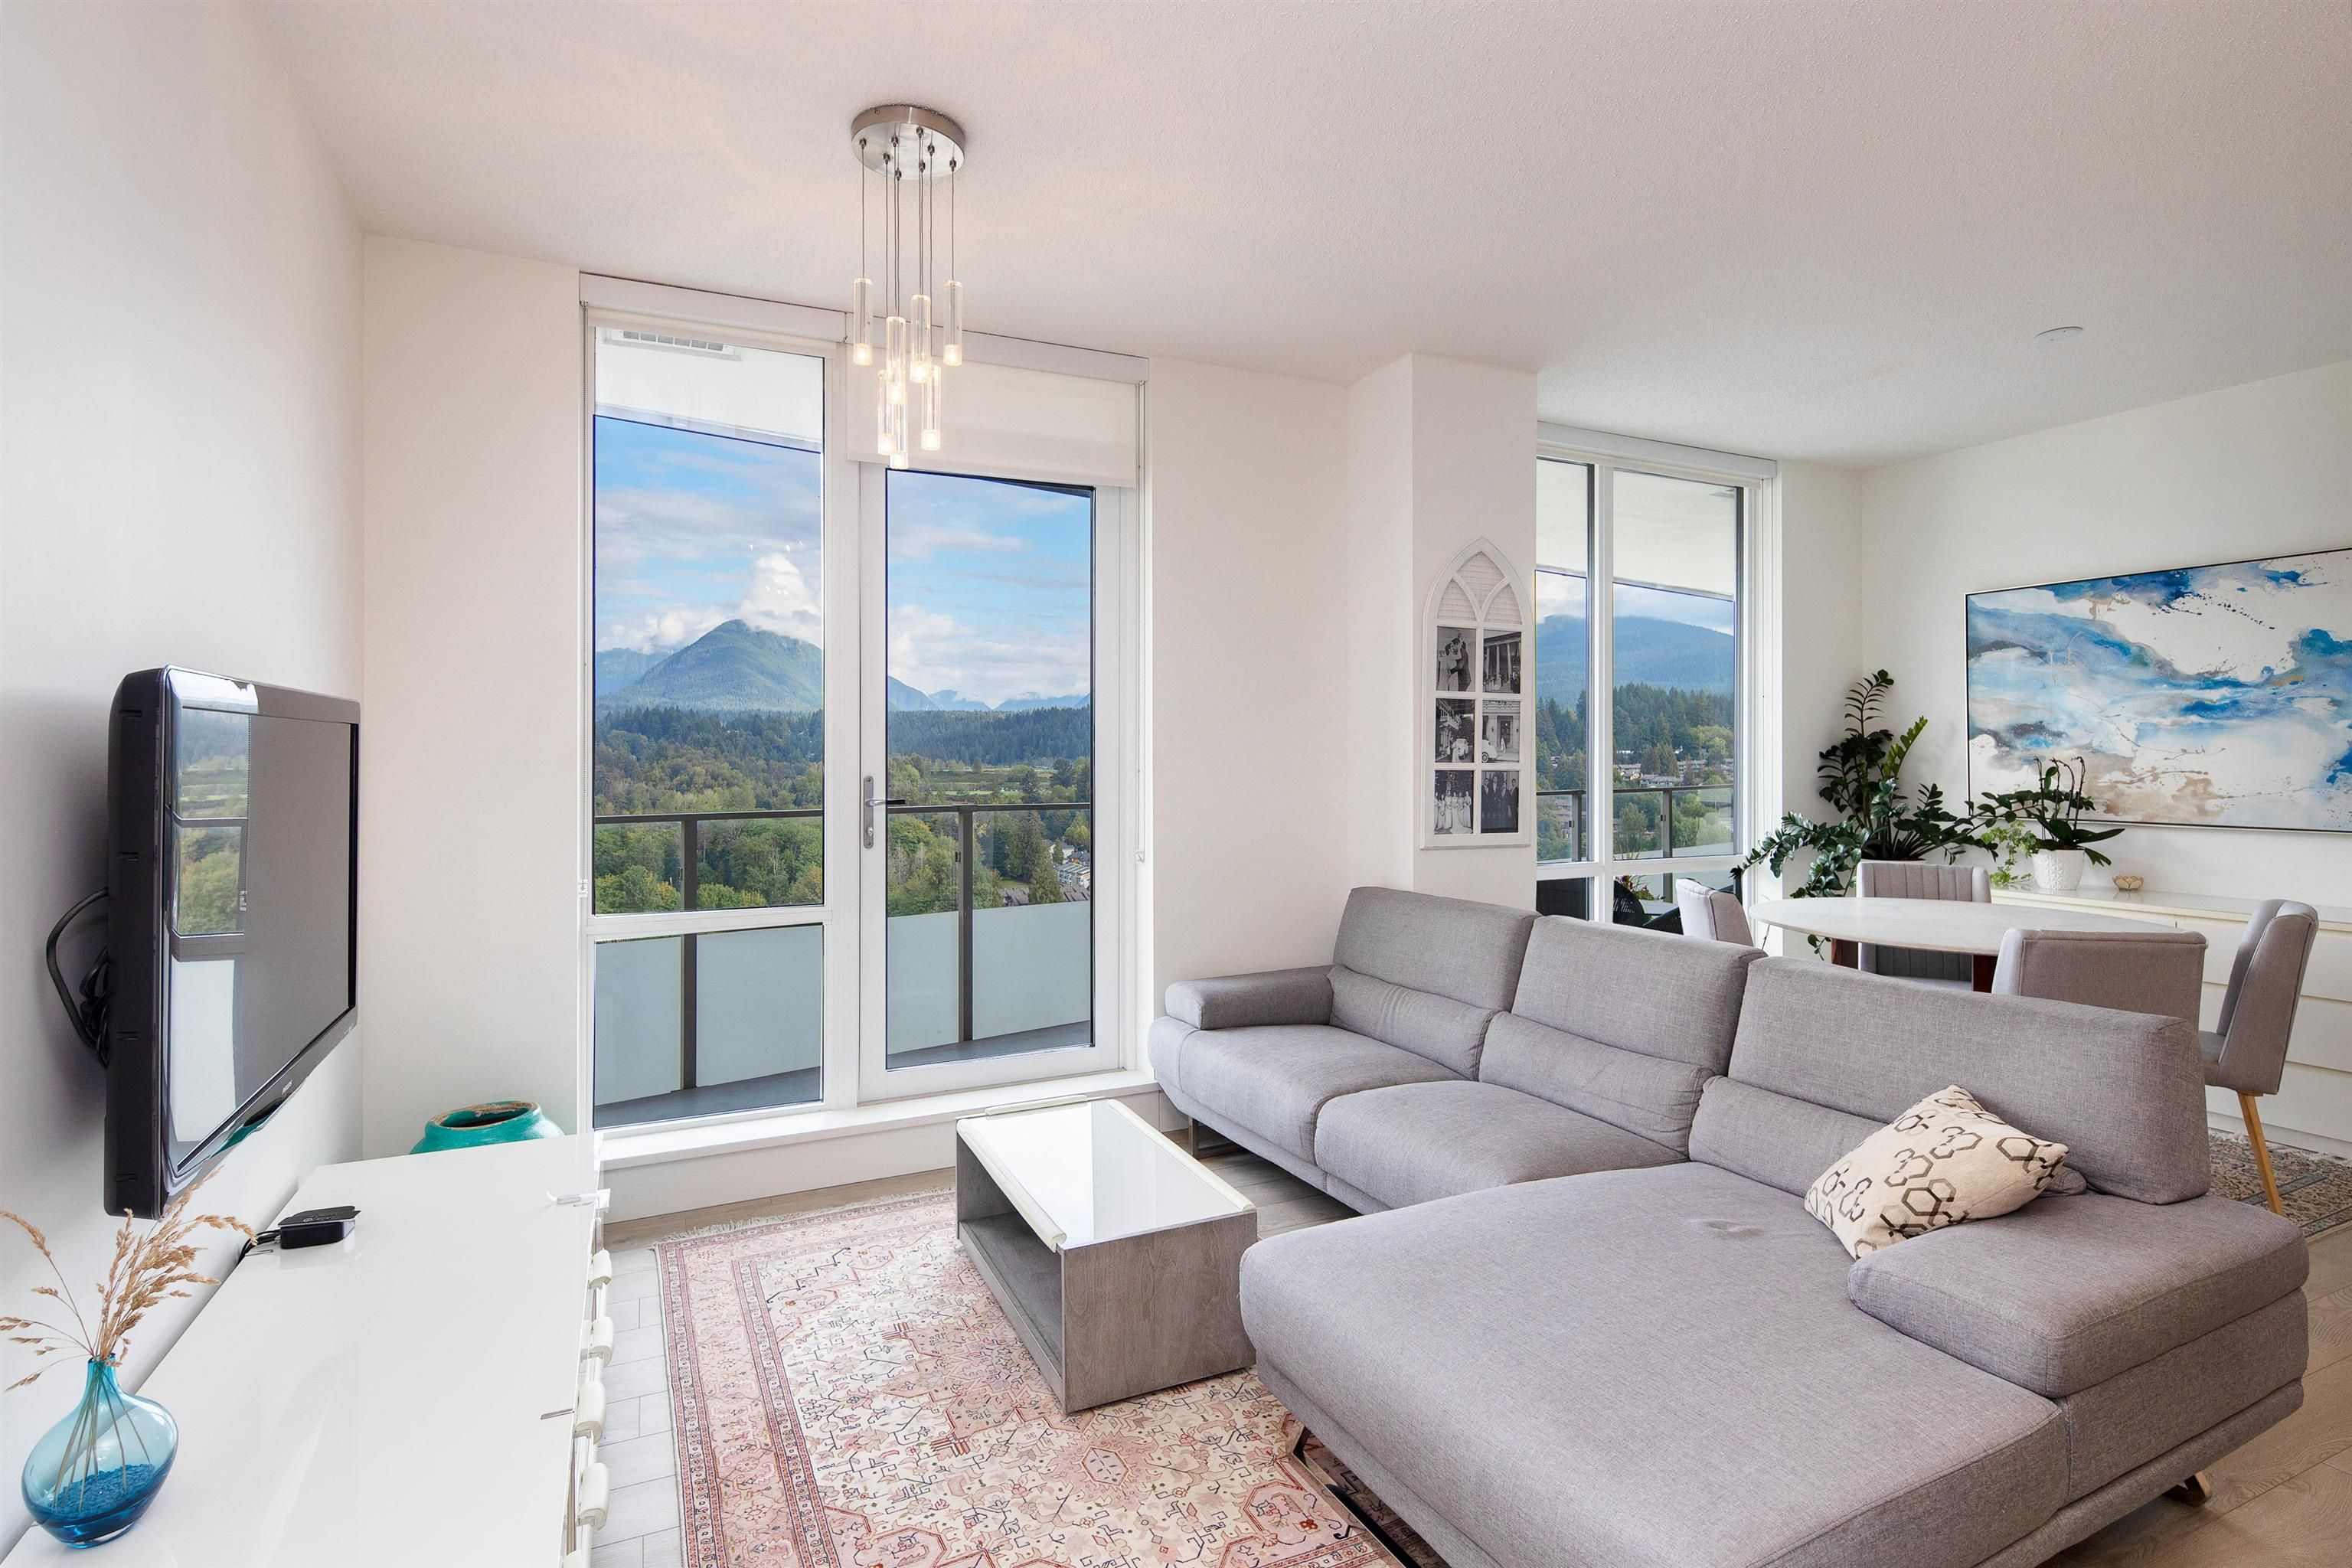 """Main Photo: 2406 1550 FERN Street in North Vancouver: Lynnmour Condo for sale in """"Beacon At Seylynn Village"""" : MLS®# R2621313"""